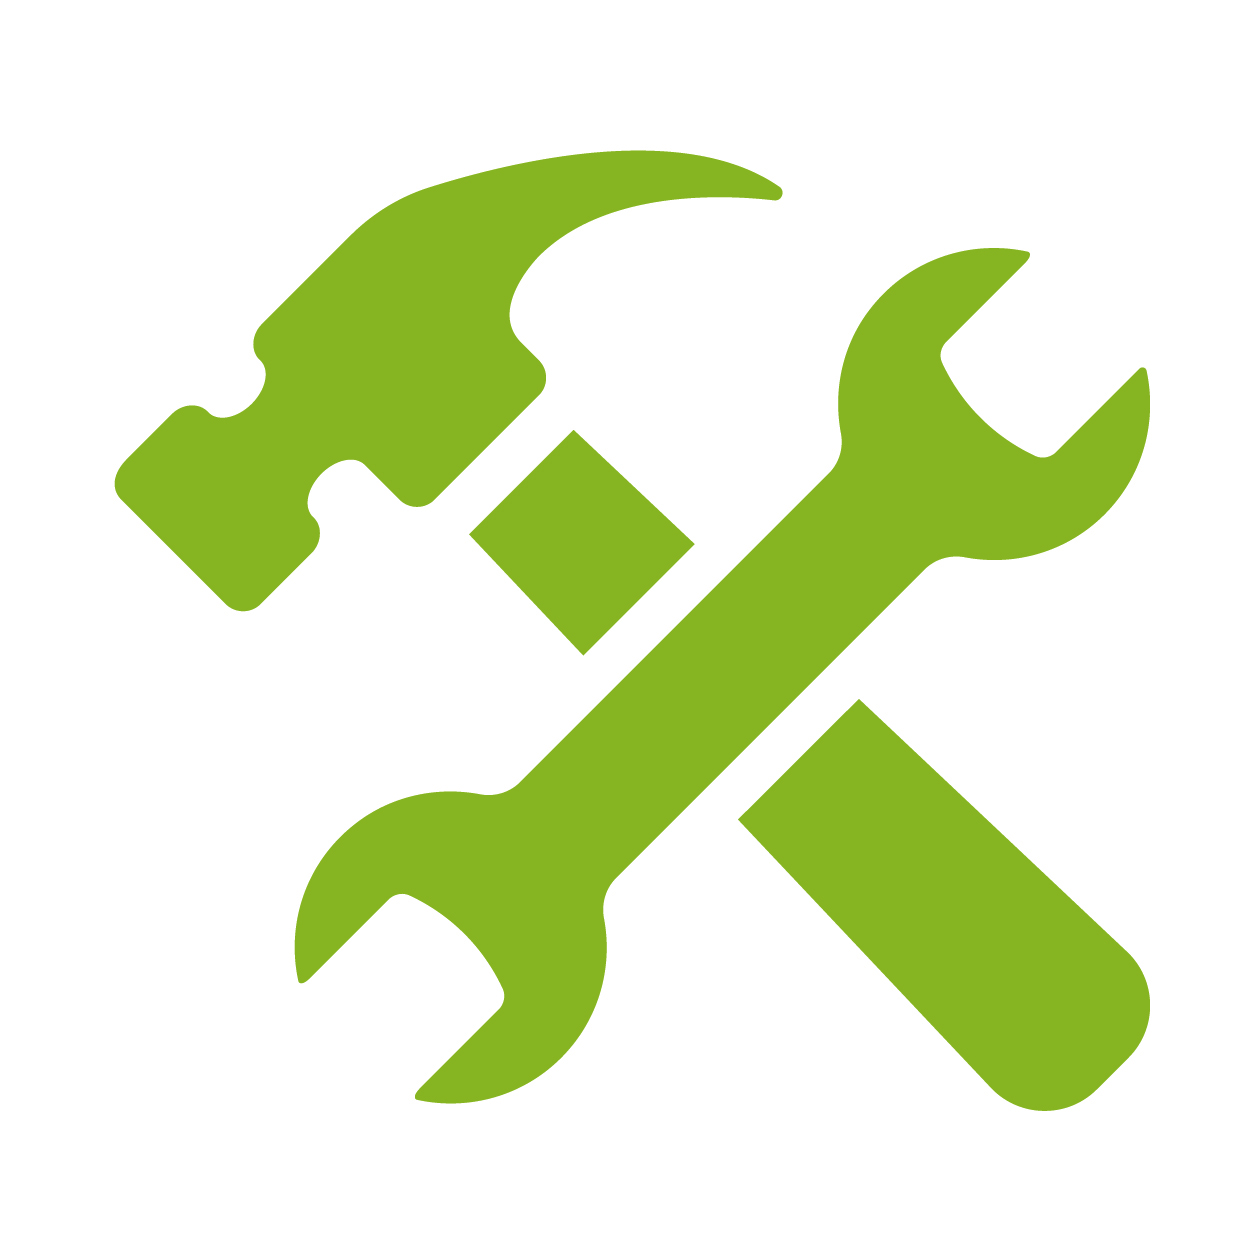 simple vector illustration of a hammer and a wrench